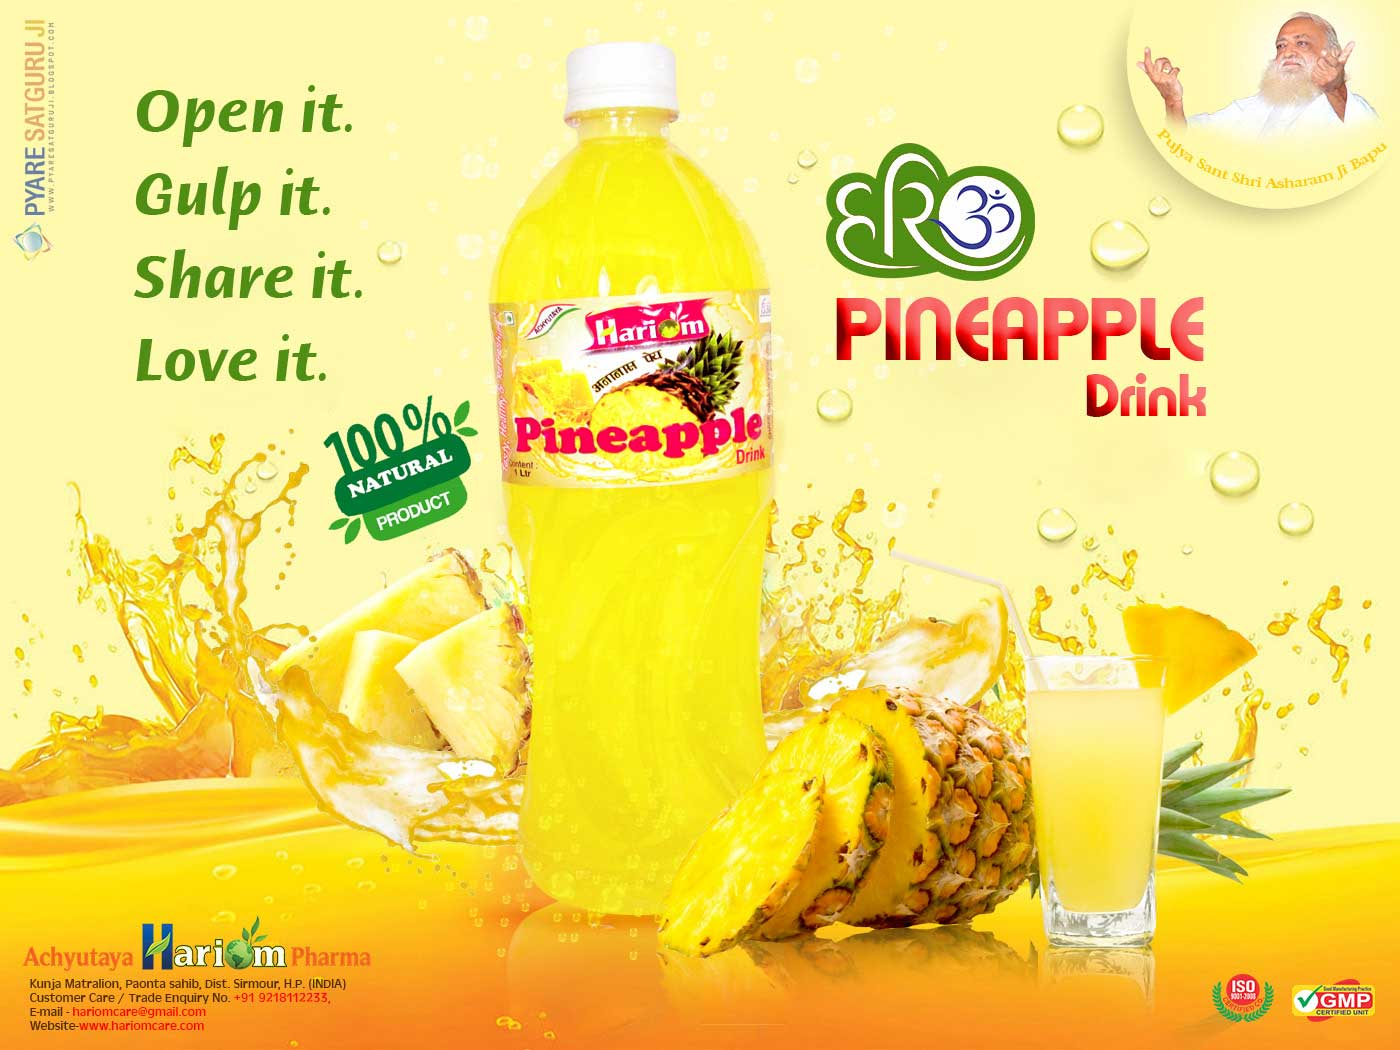 अच्युताय हरिओम अनानास ड्रिंक -Achyutaya Hariom Pineapple Drink